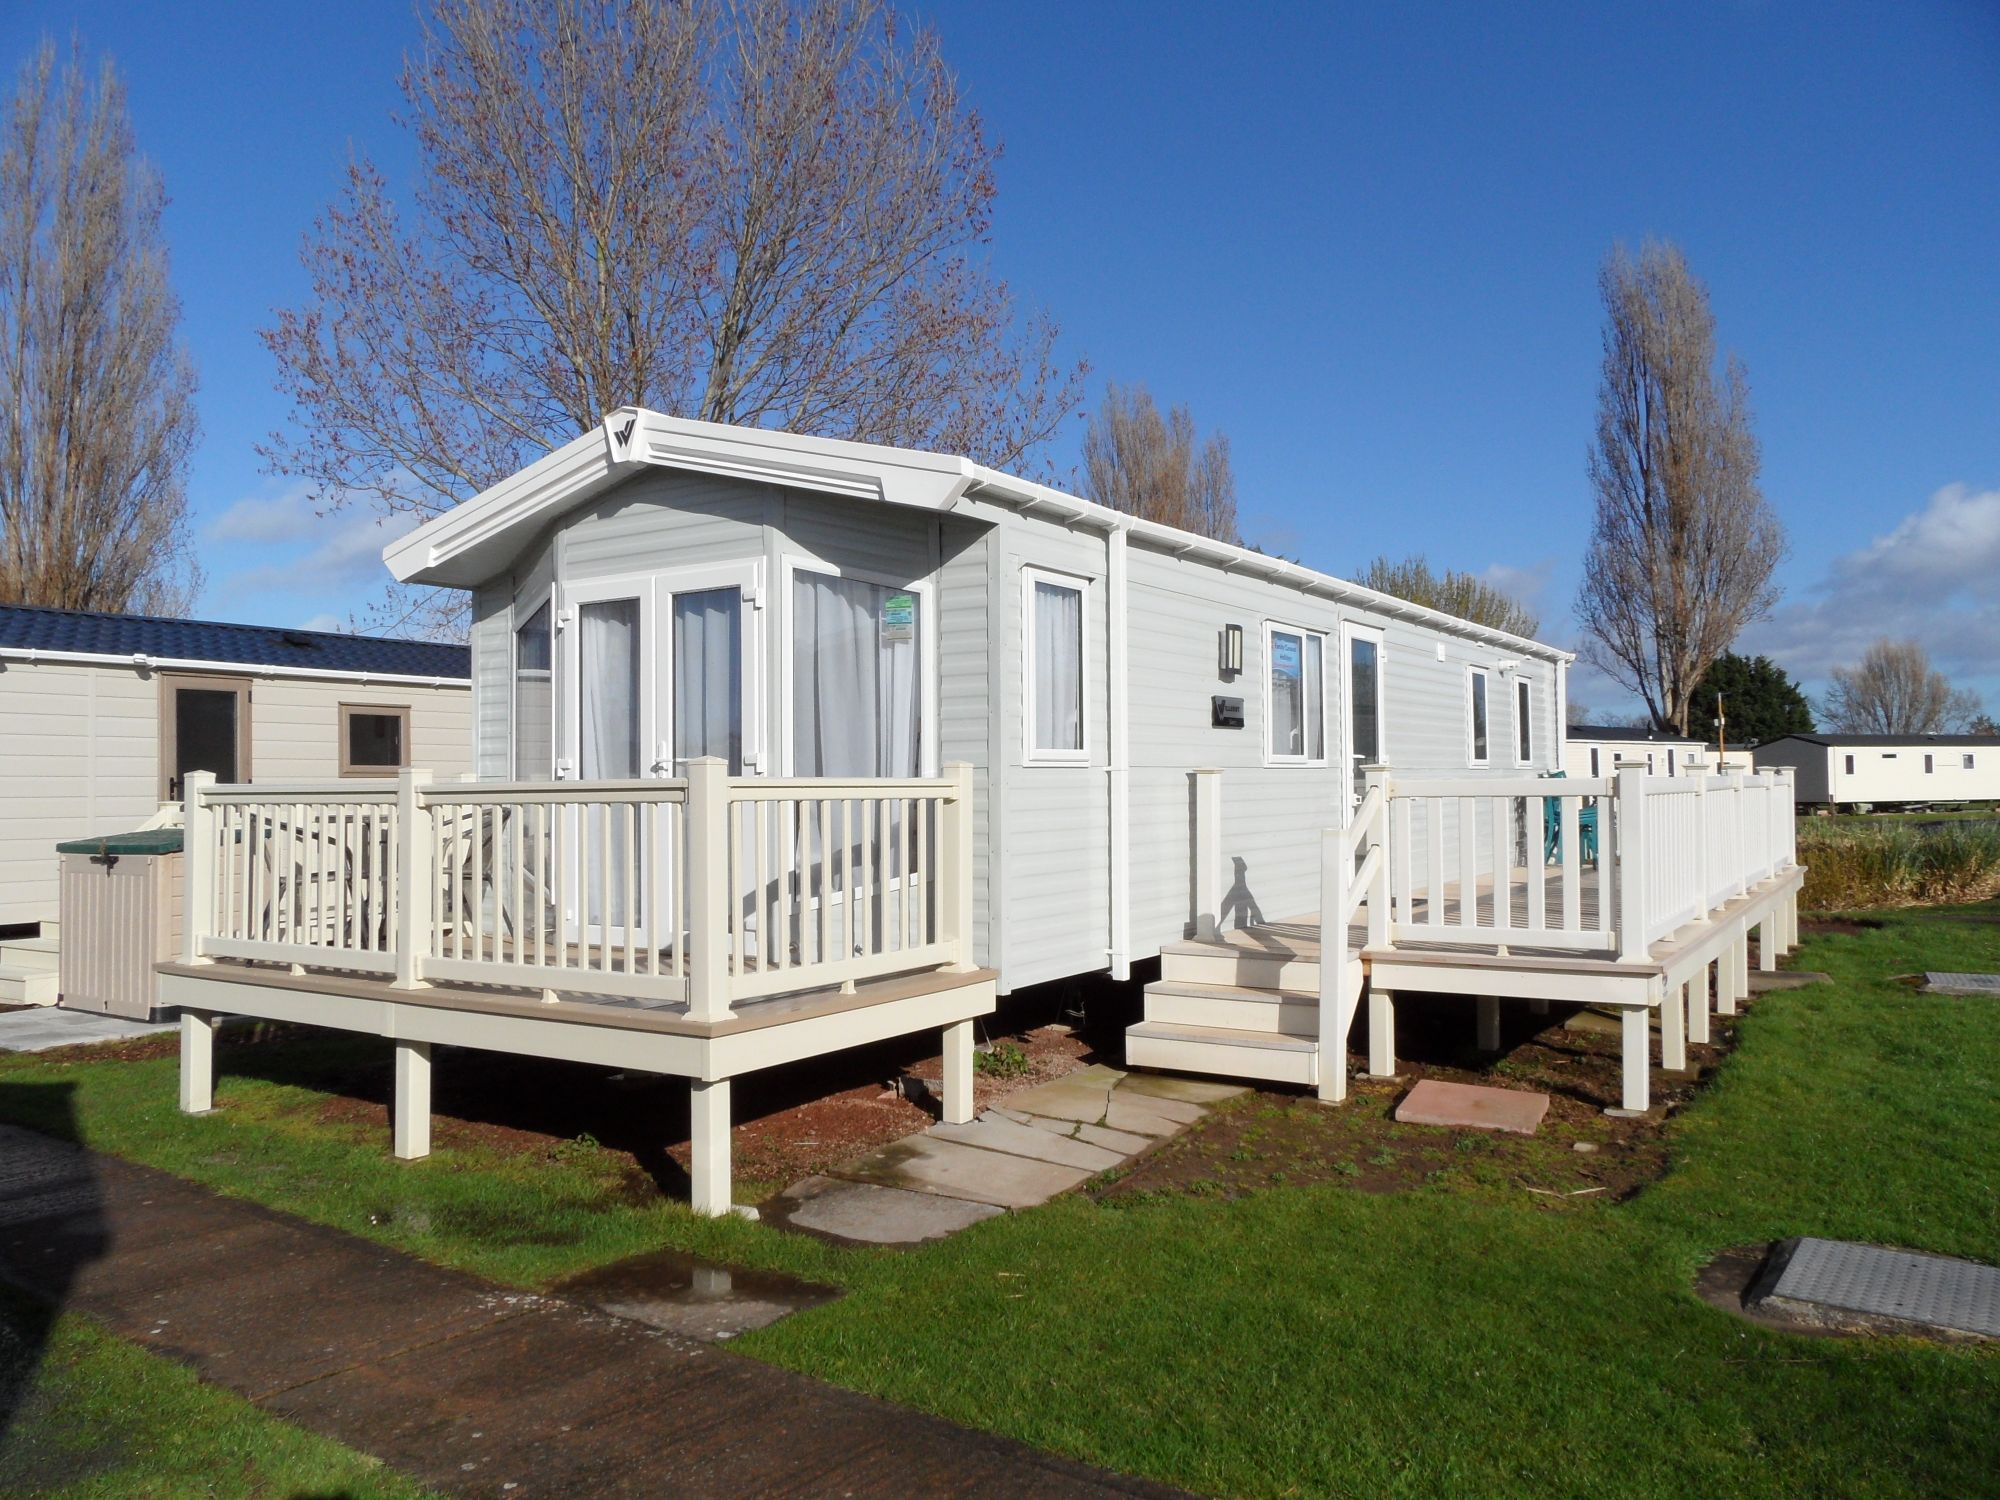 Butlins Holiday Homes New Luxury Caravan